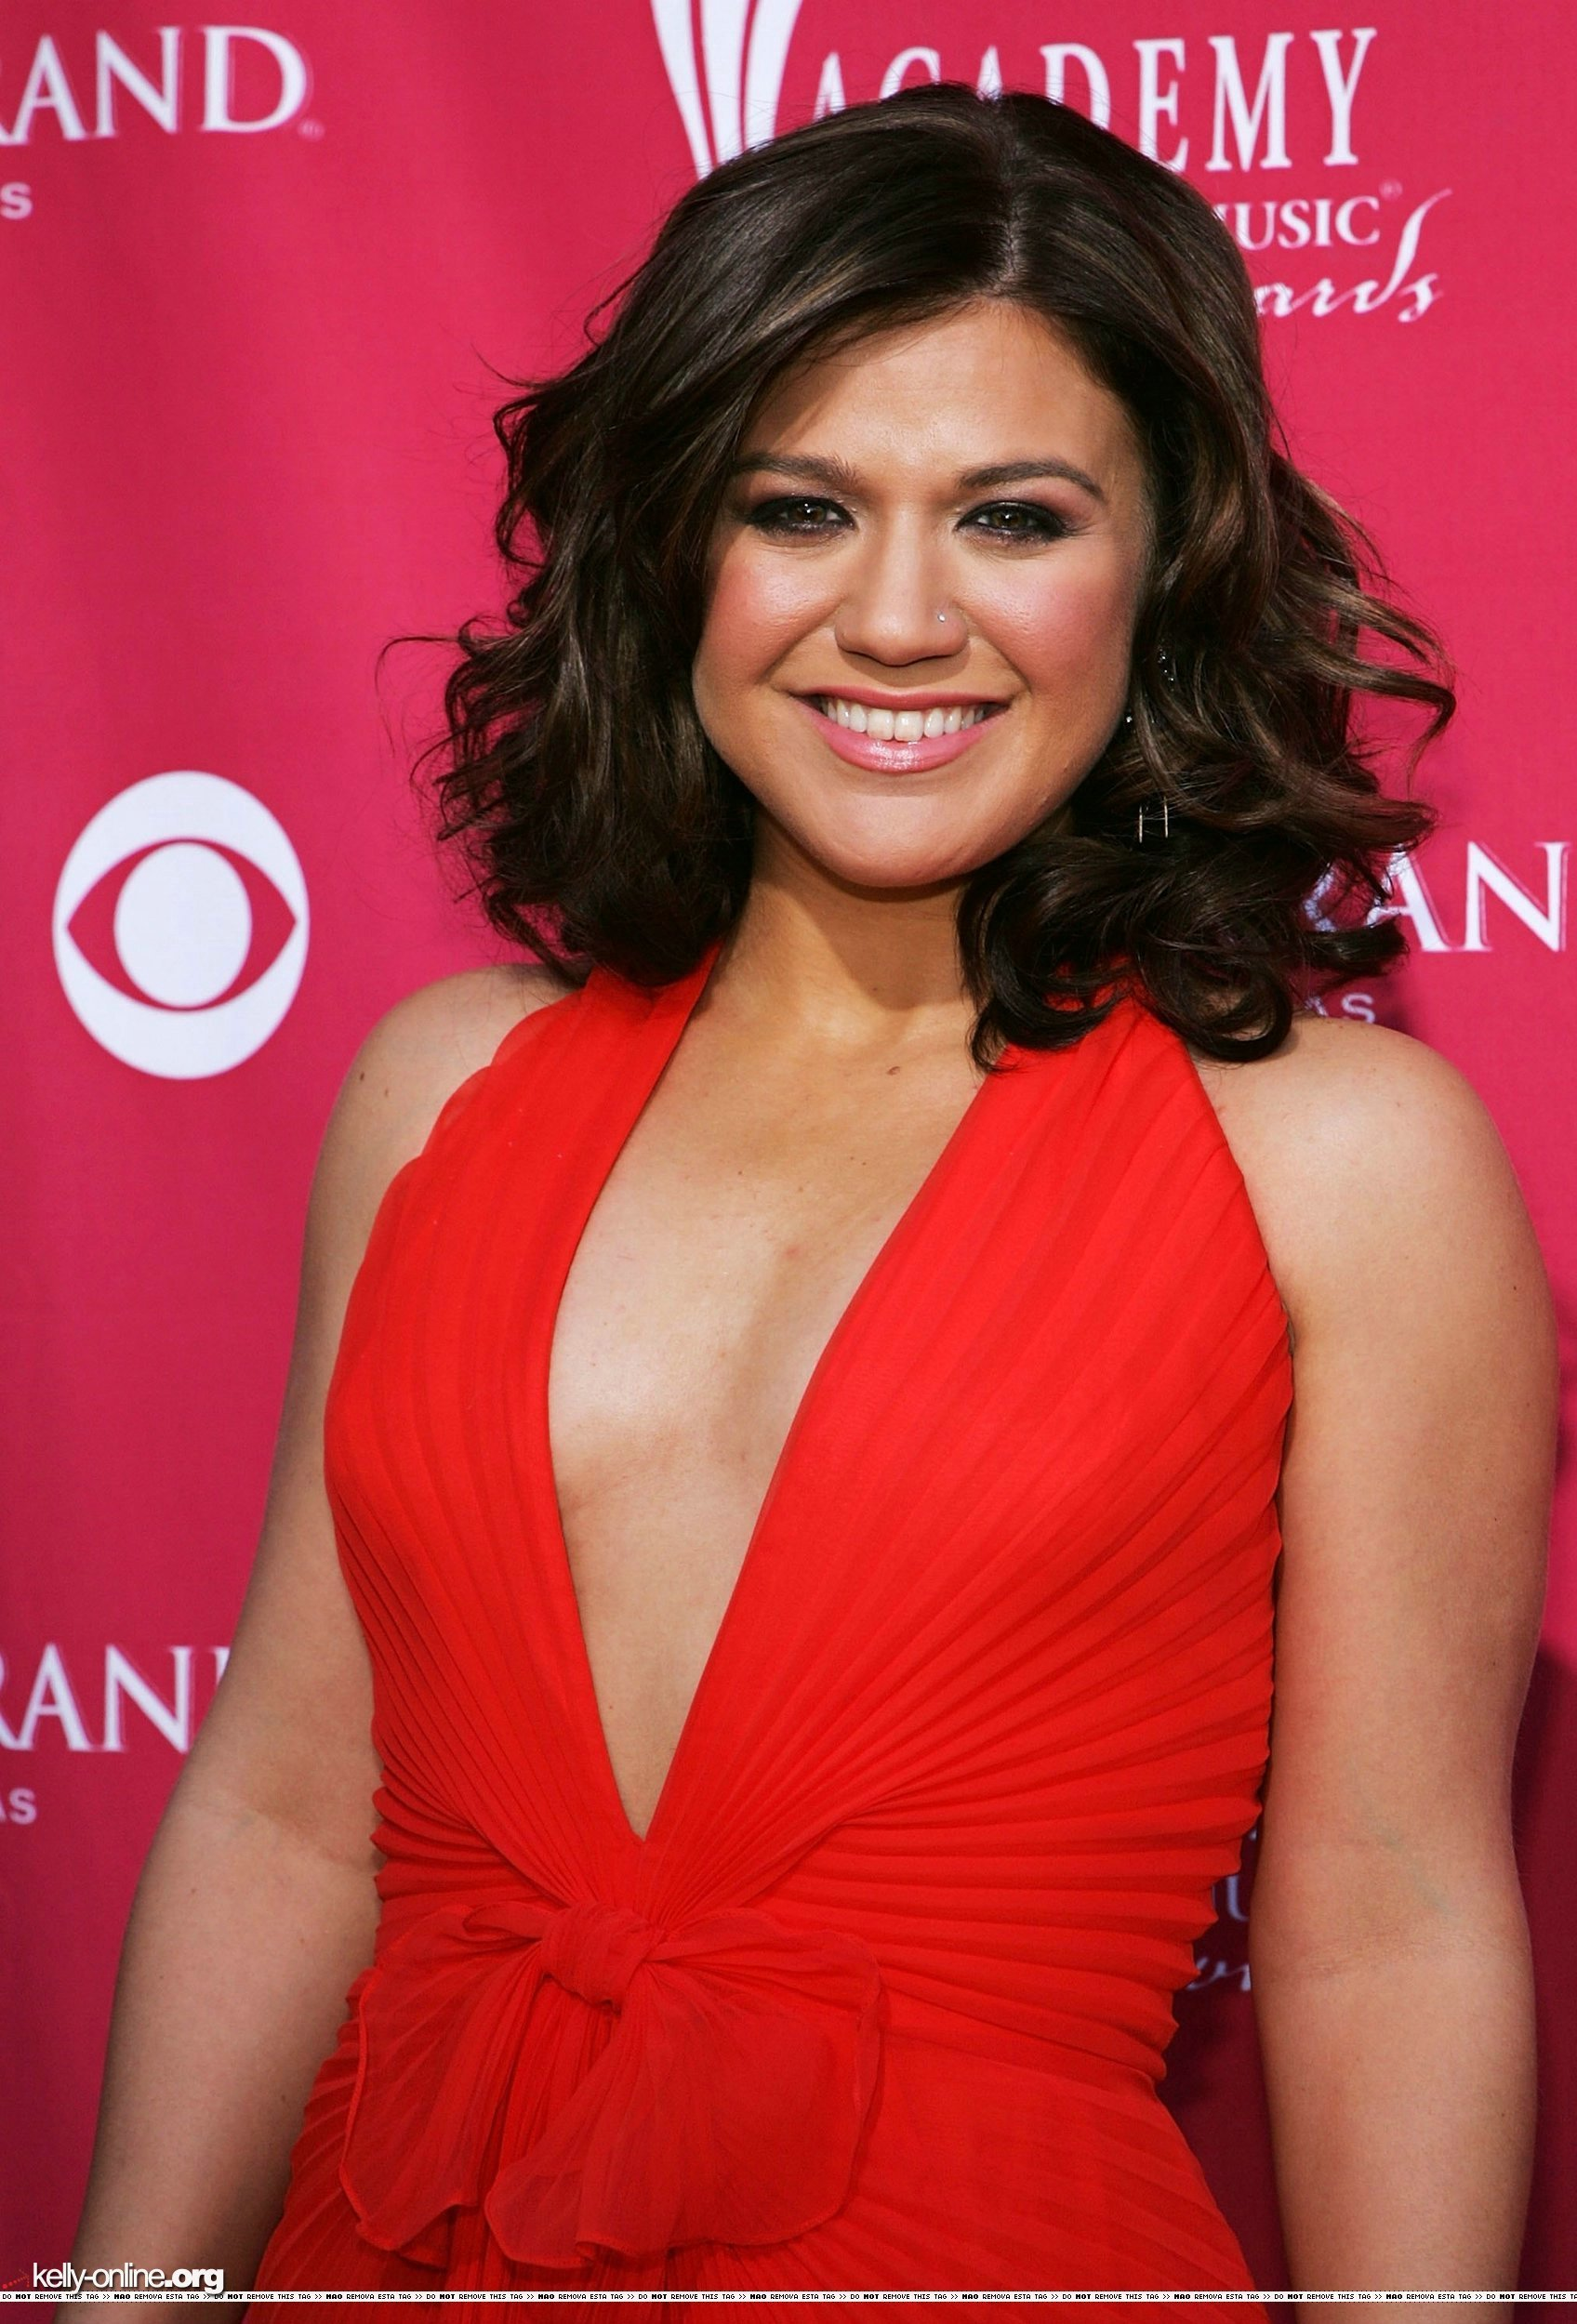 kelly on the COUNTRY MUSIC AWARDS - Kelly Clarkson Photo (5063229 ...